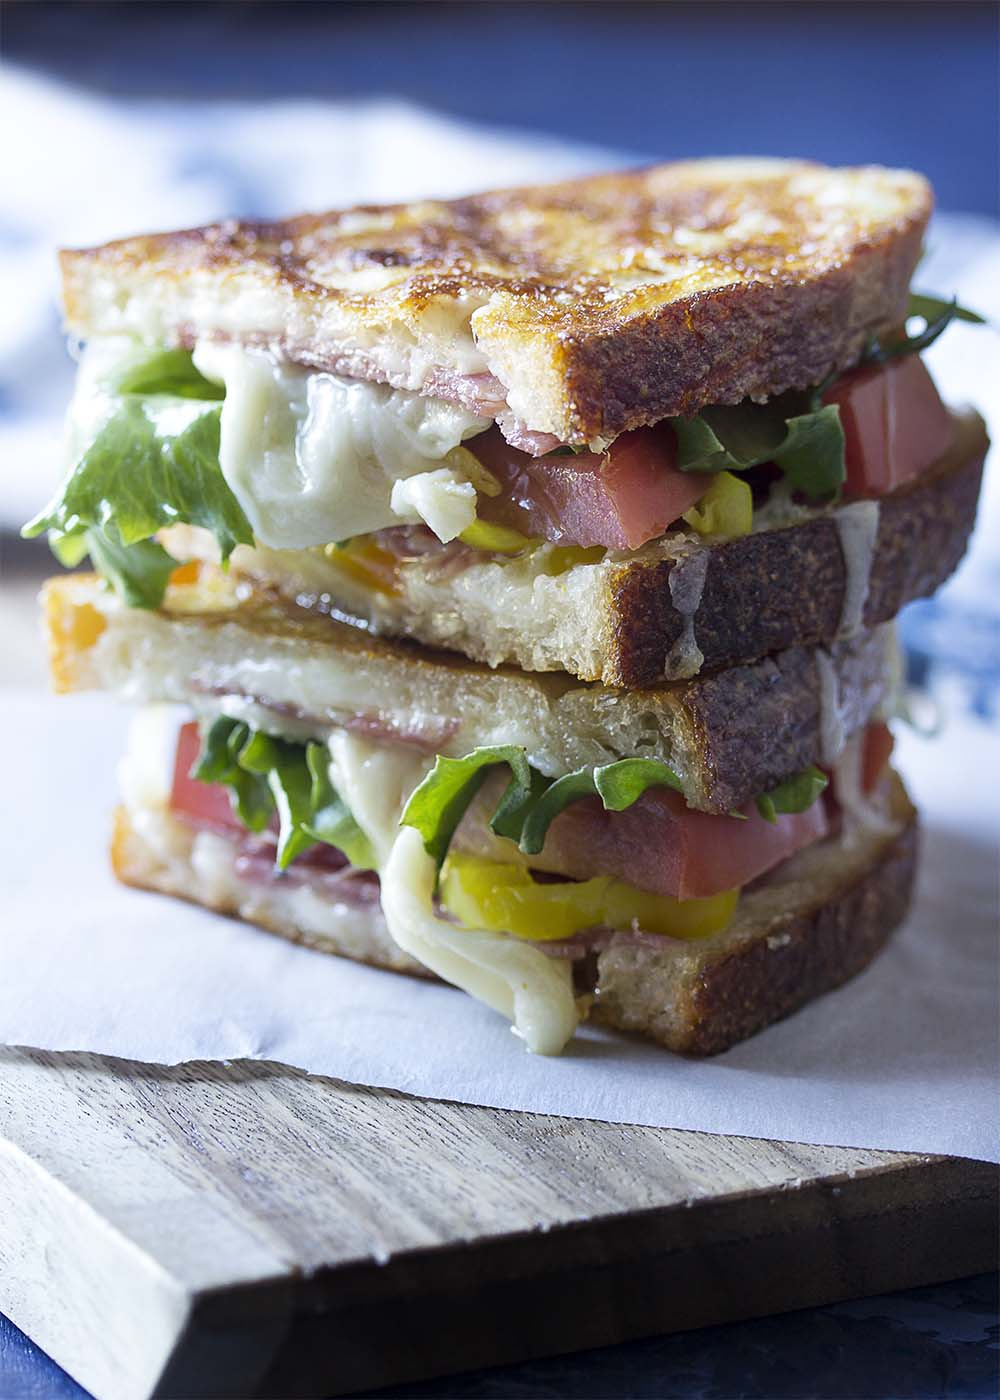 Close up of a golden brown panini full of Italian sub ingredients.